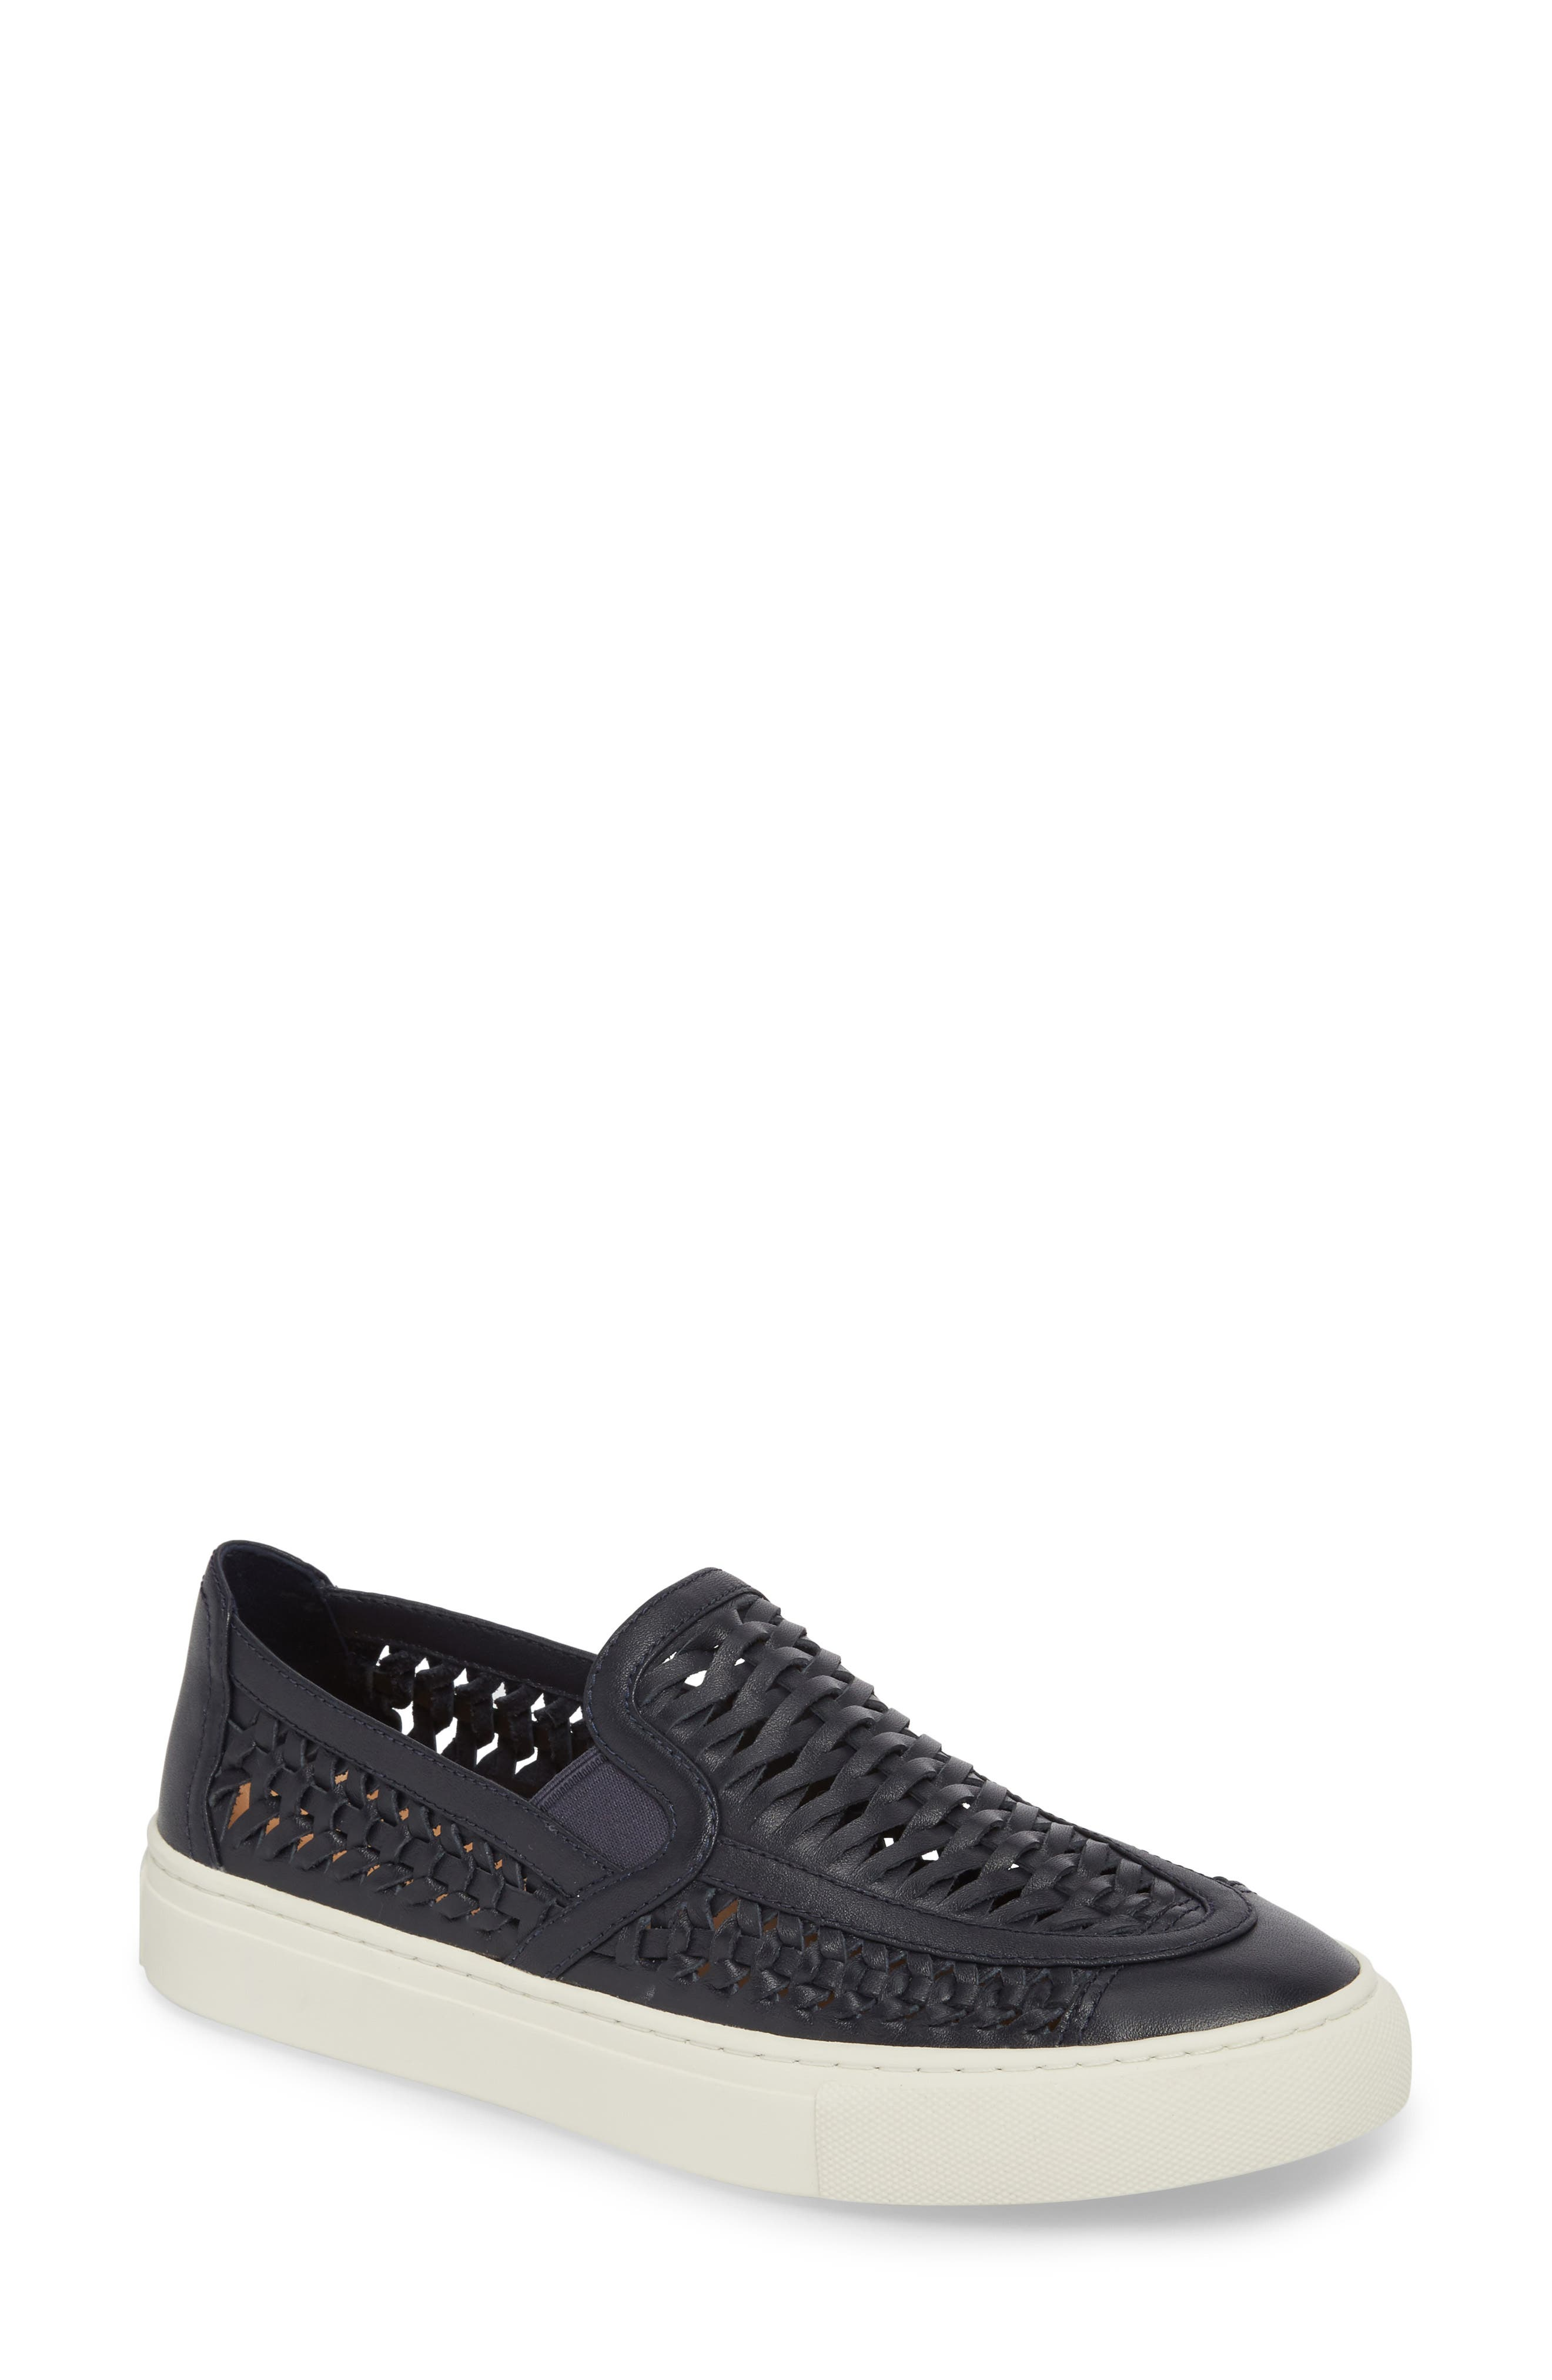 TORY BURCH Huarache 2 Slip-On Sneaker, Main, color, 403